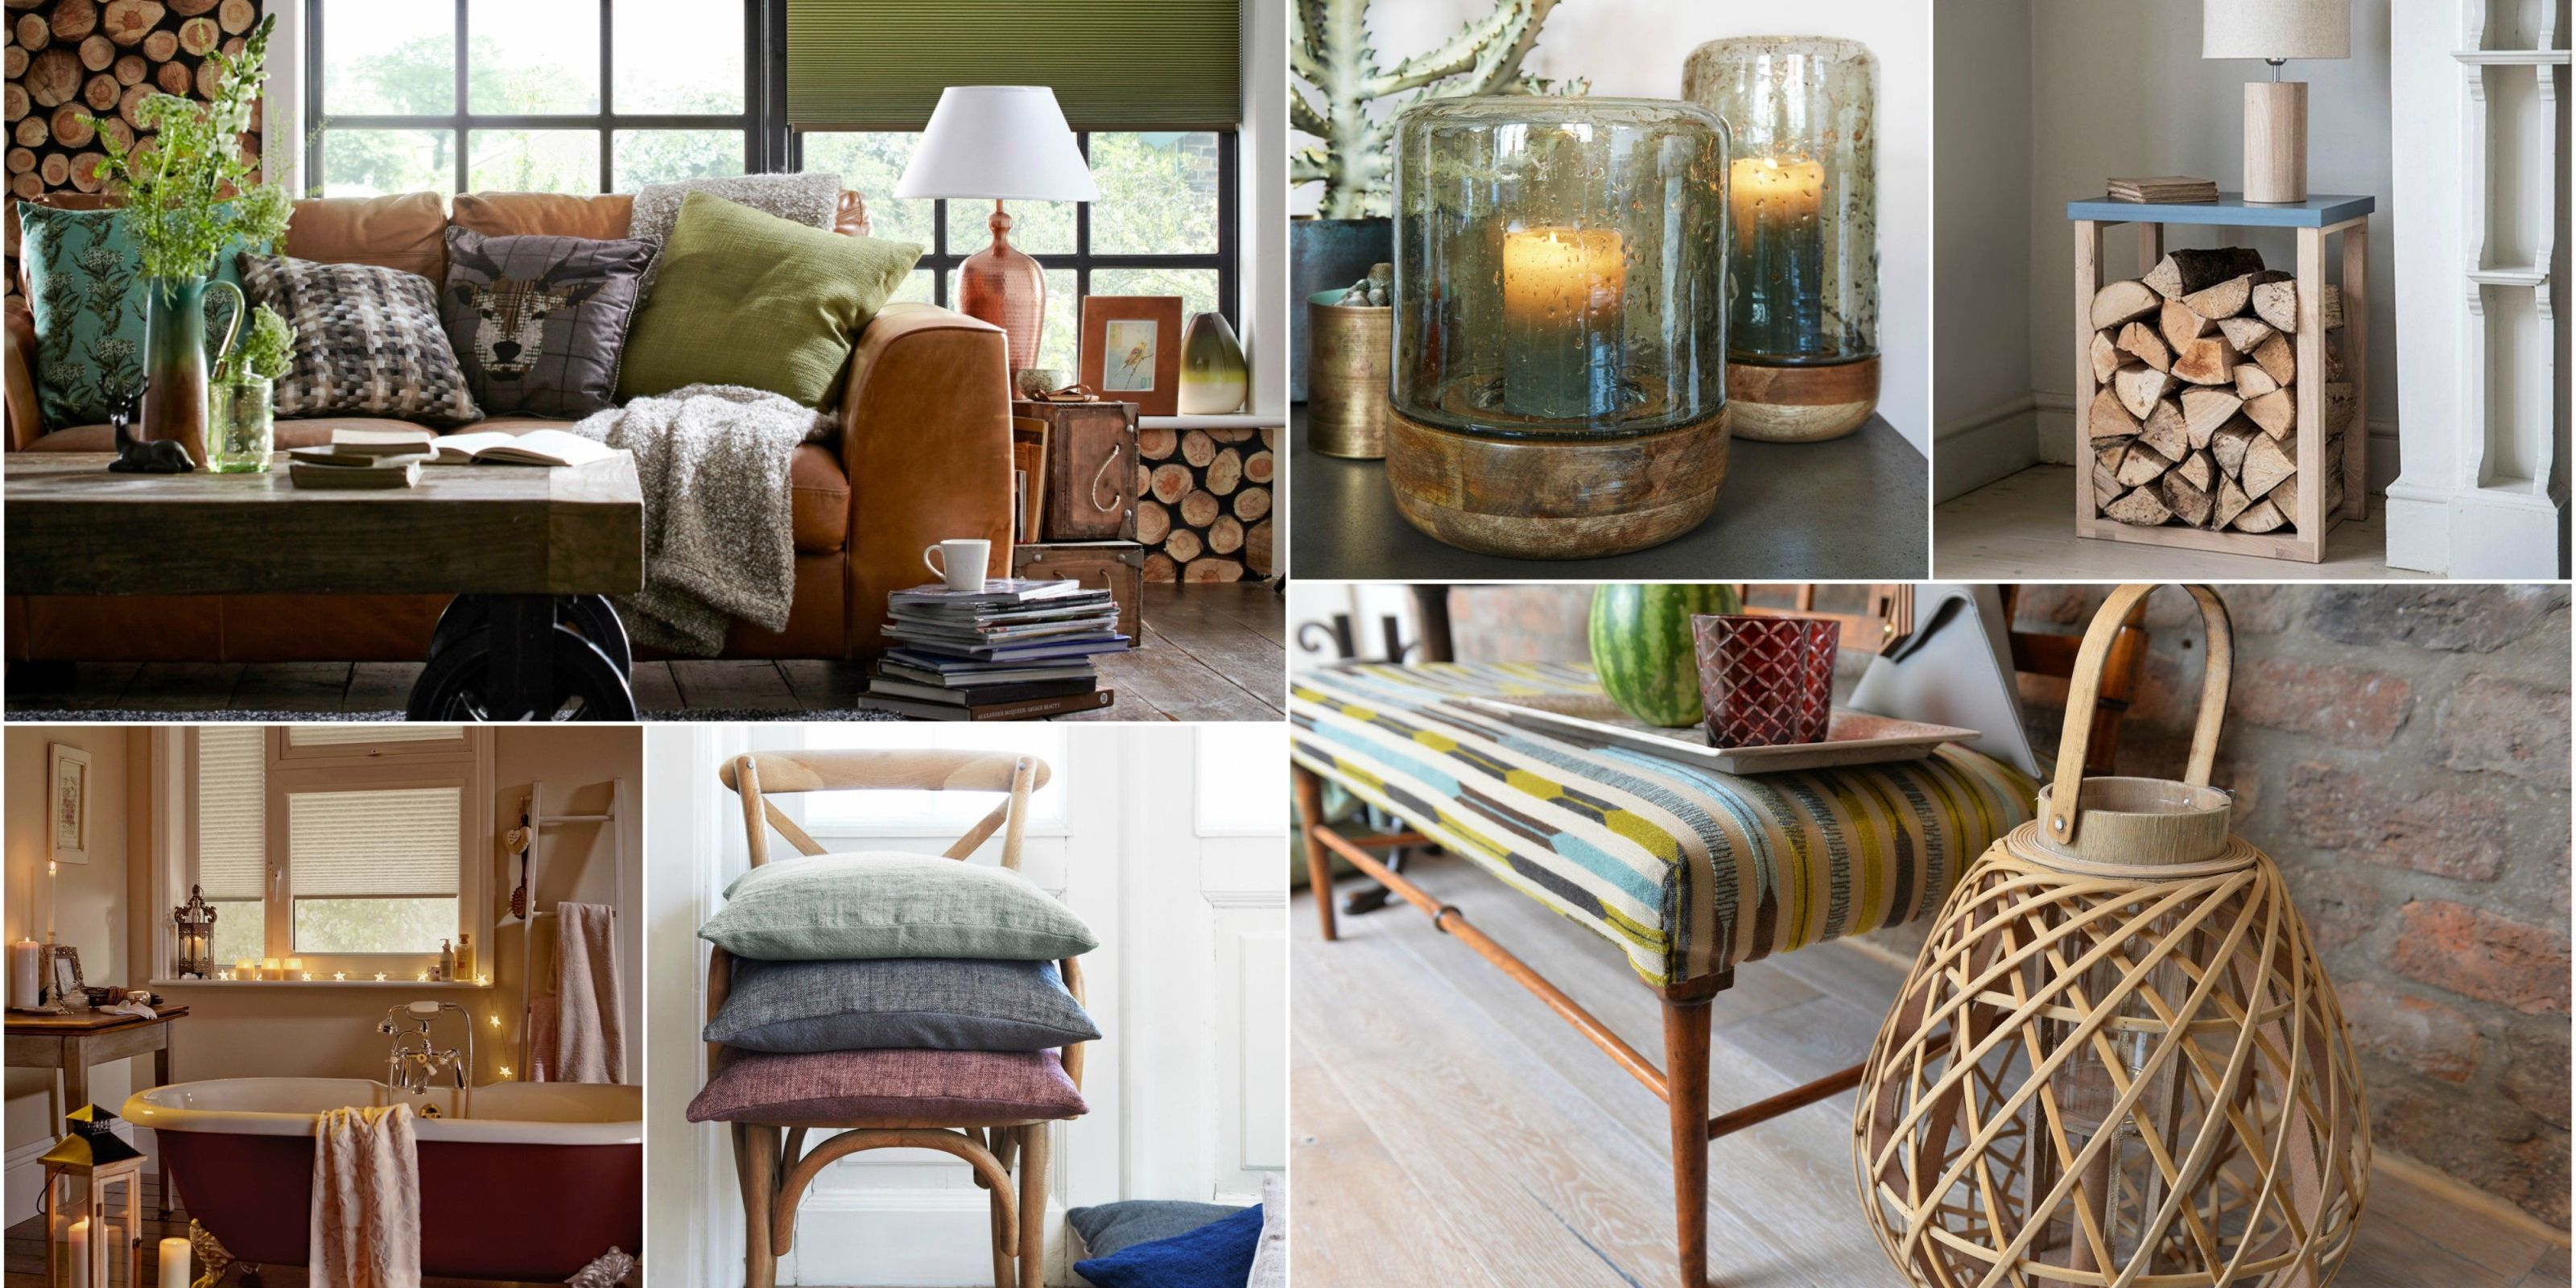 27 hygge-inspired items for your home